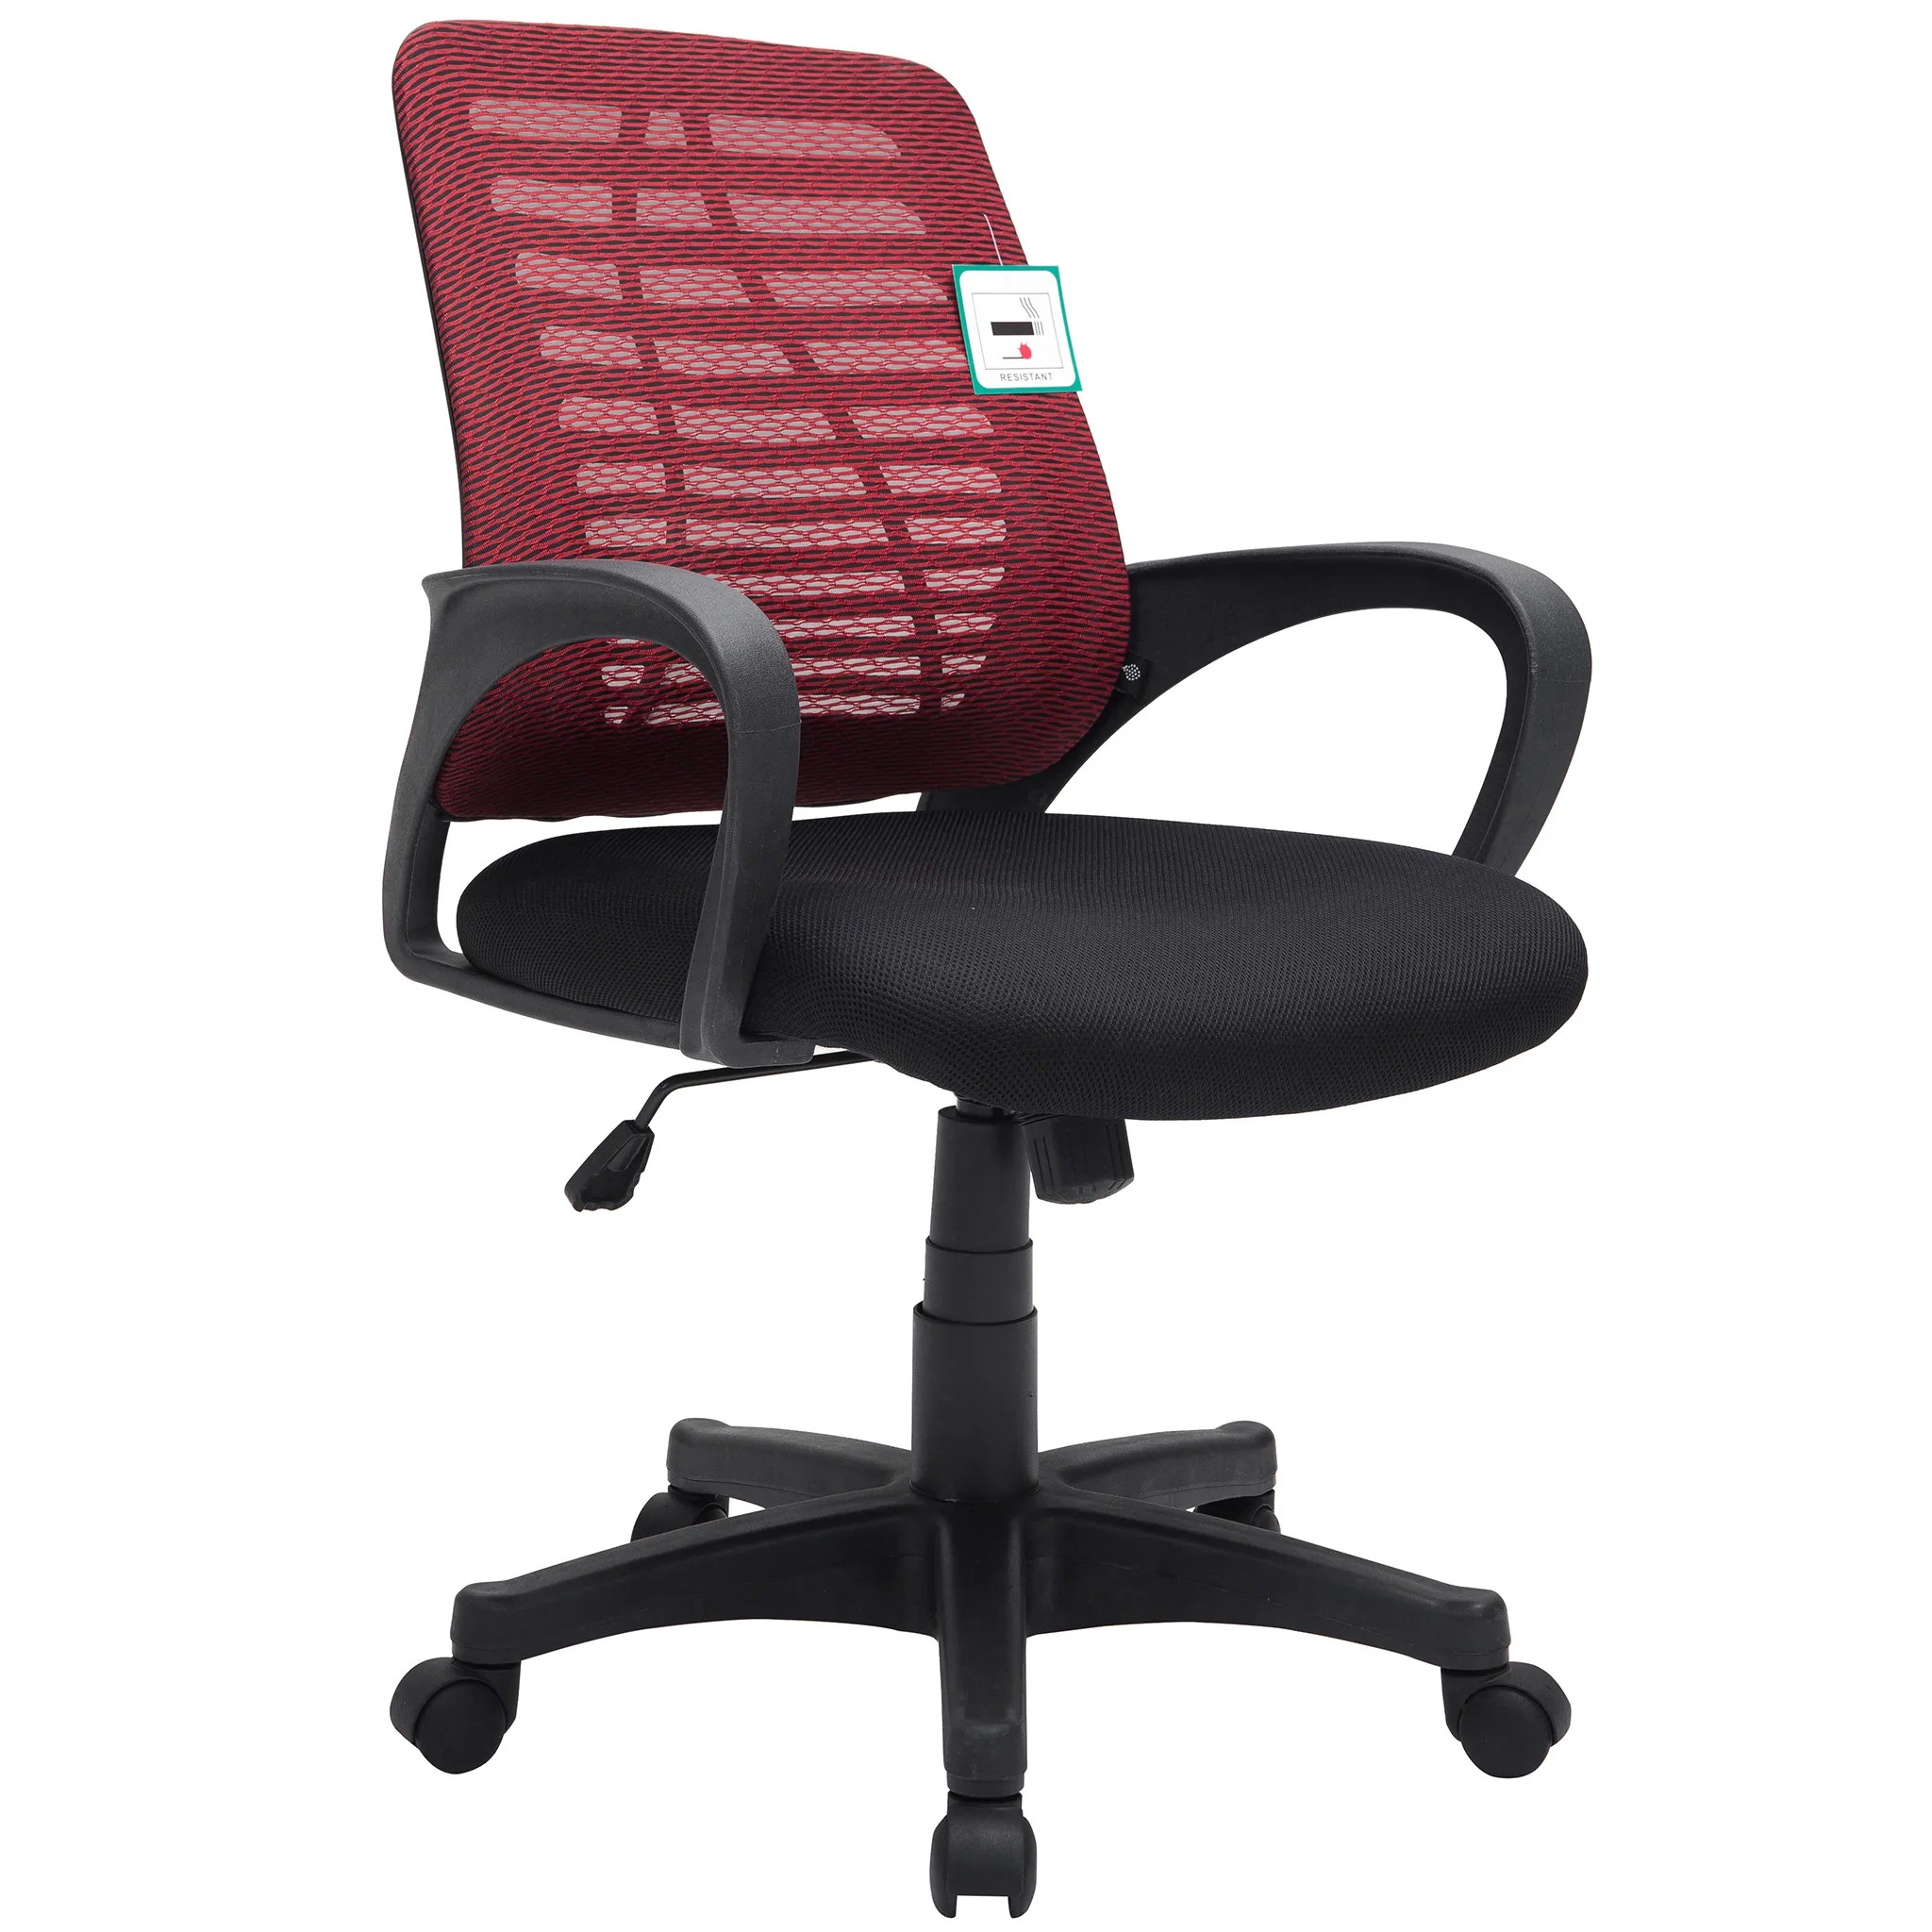 Cheap Computer Chair Mesh Fabric Padded Swivel Office Chair Computer Desk Chair Dark Red Black